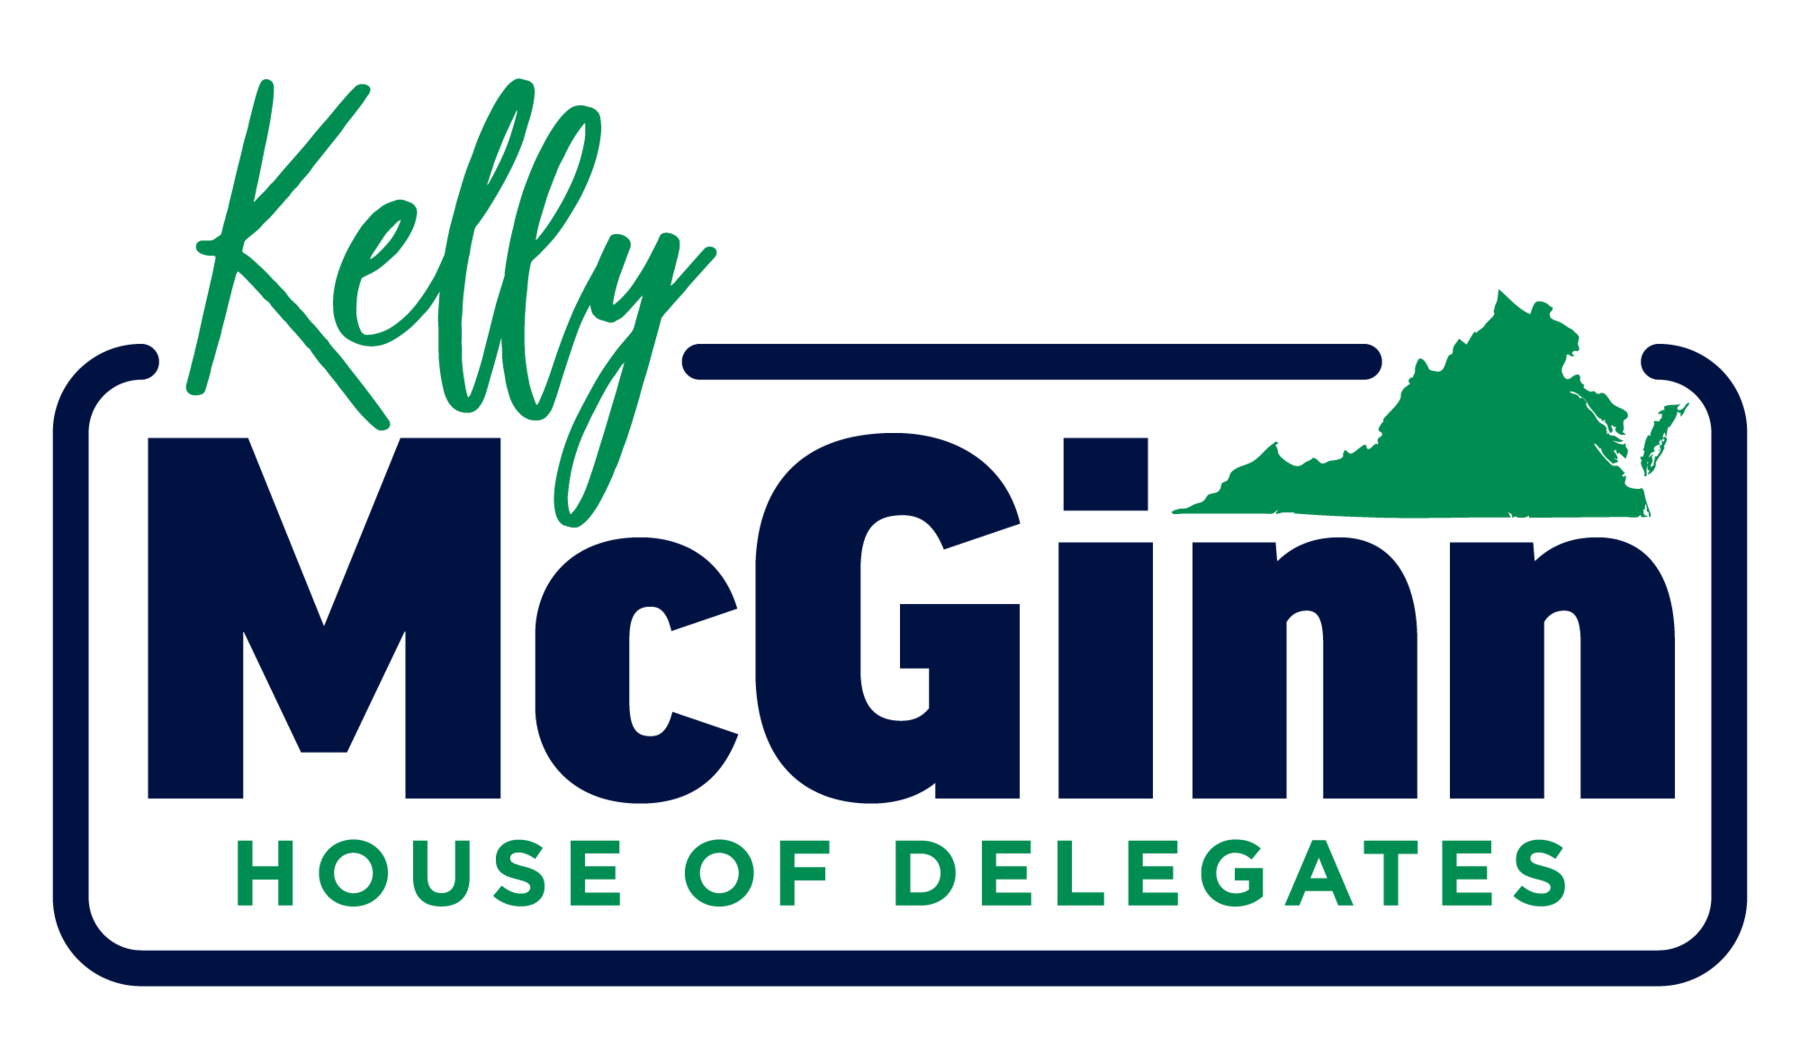 Friends of Kelly McGinn: General Fund